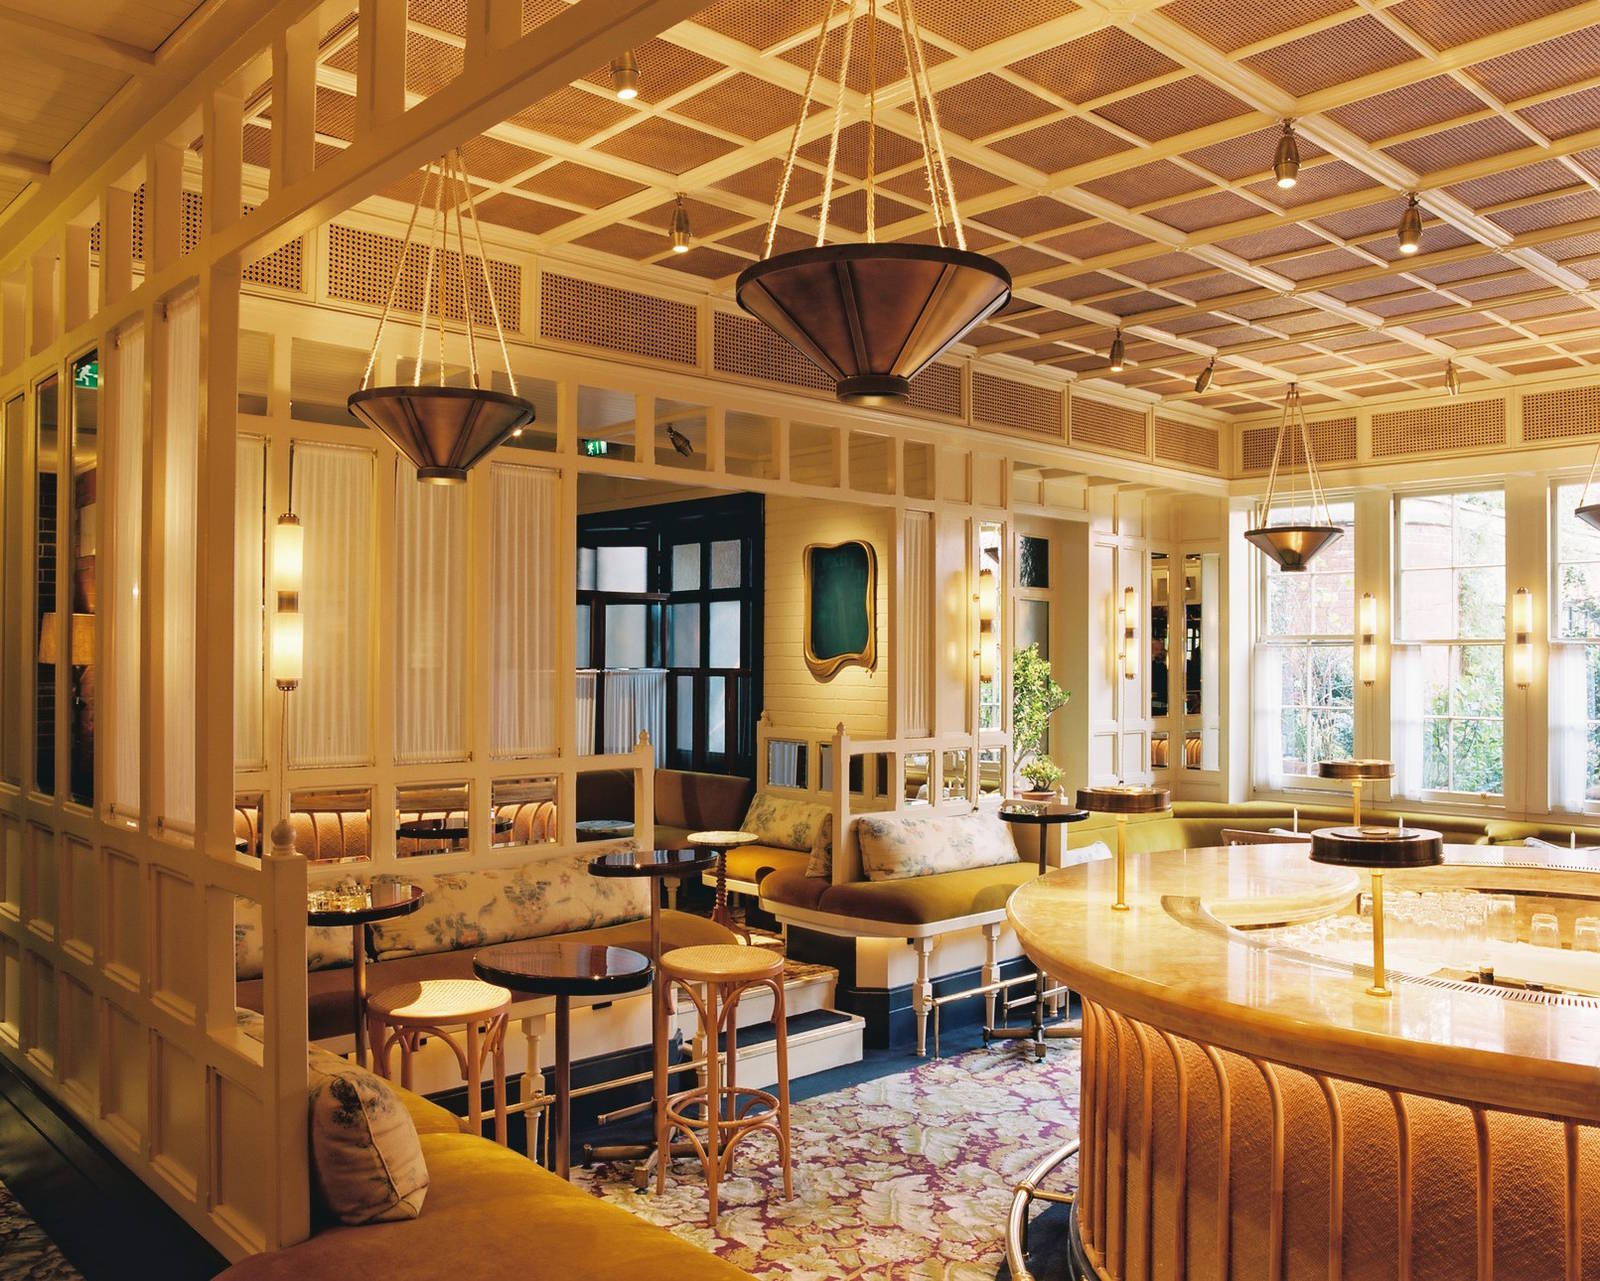 london luxury hotels overview chiltern firehouse luxury